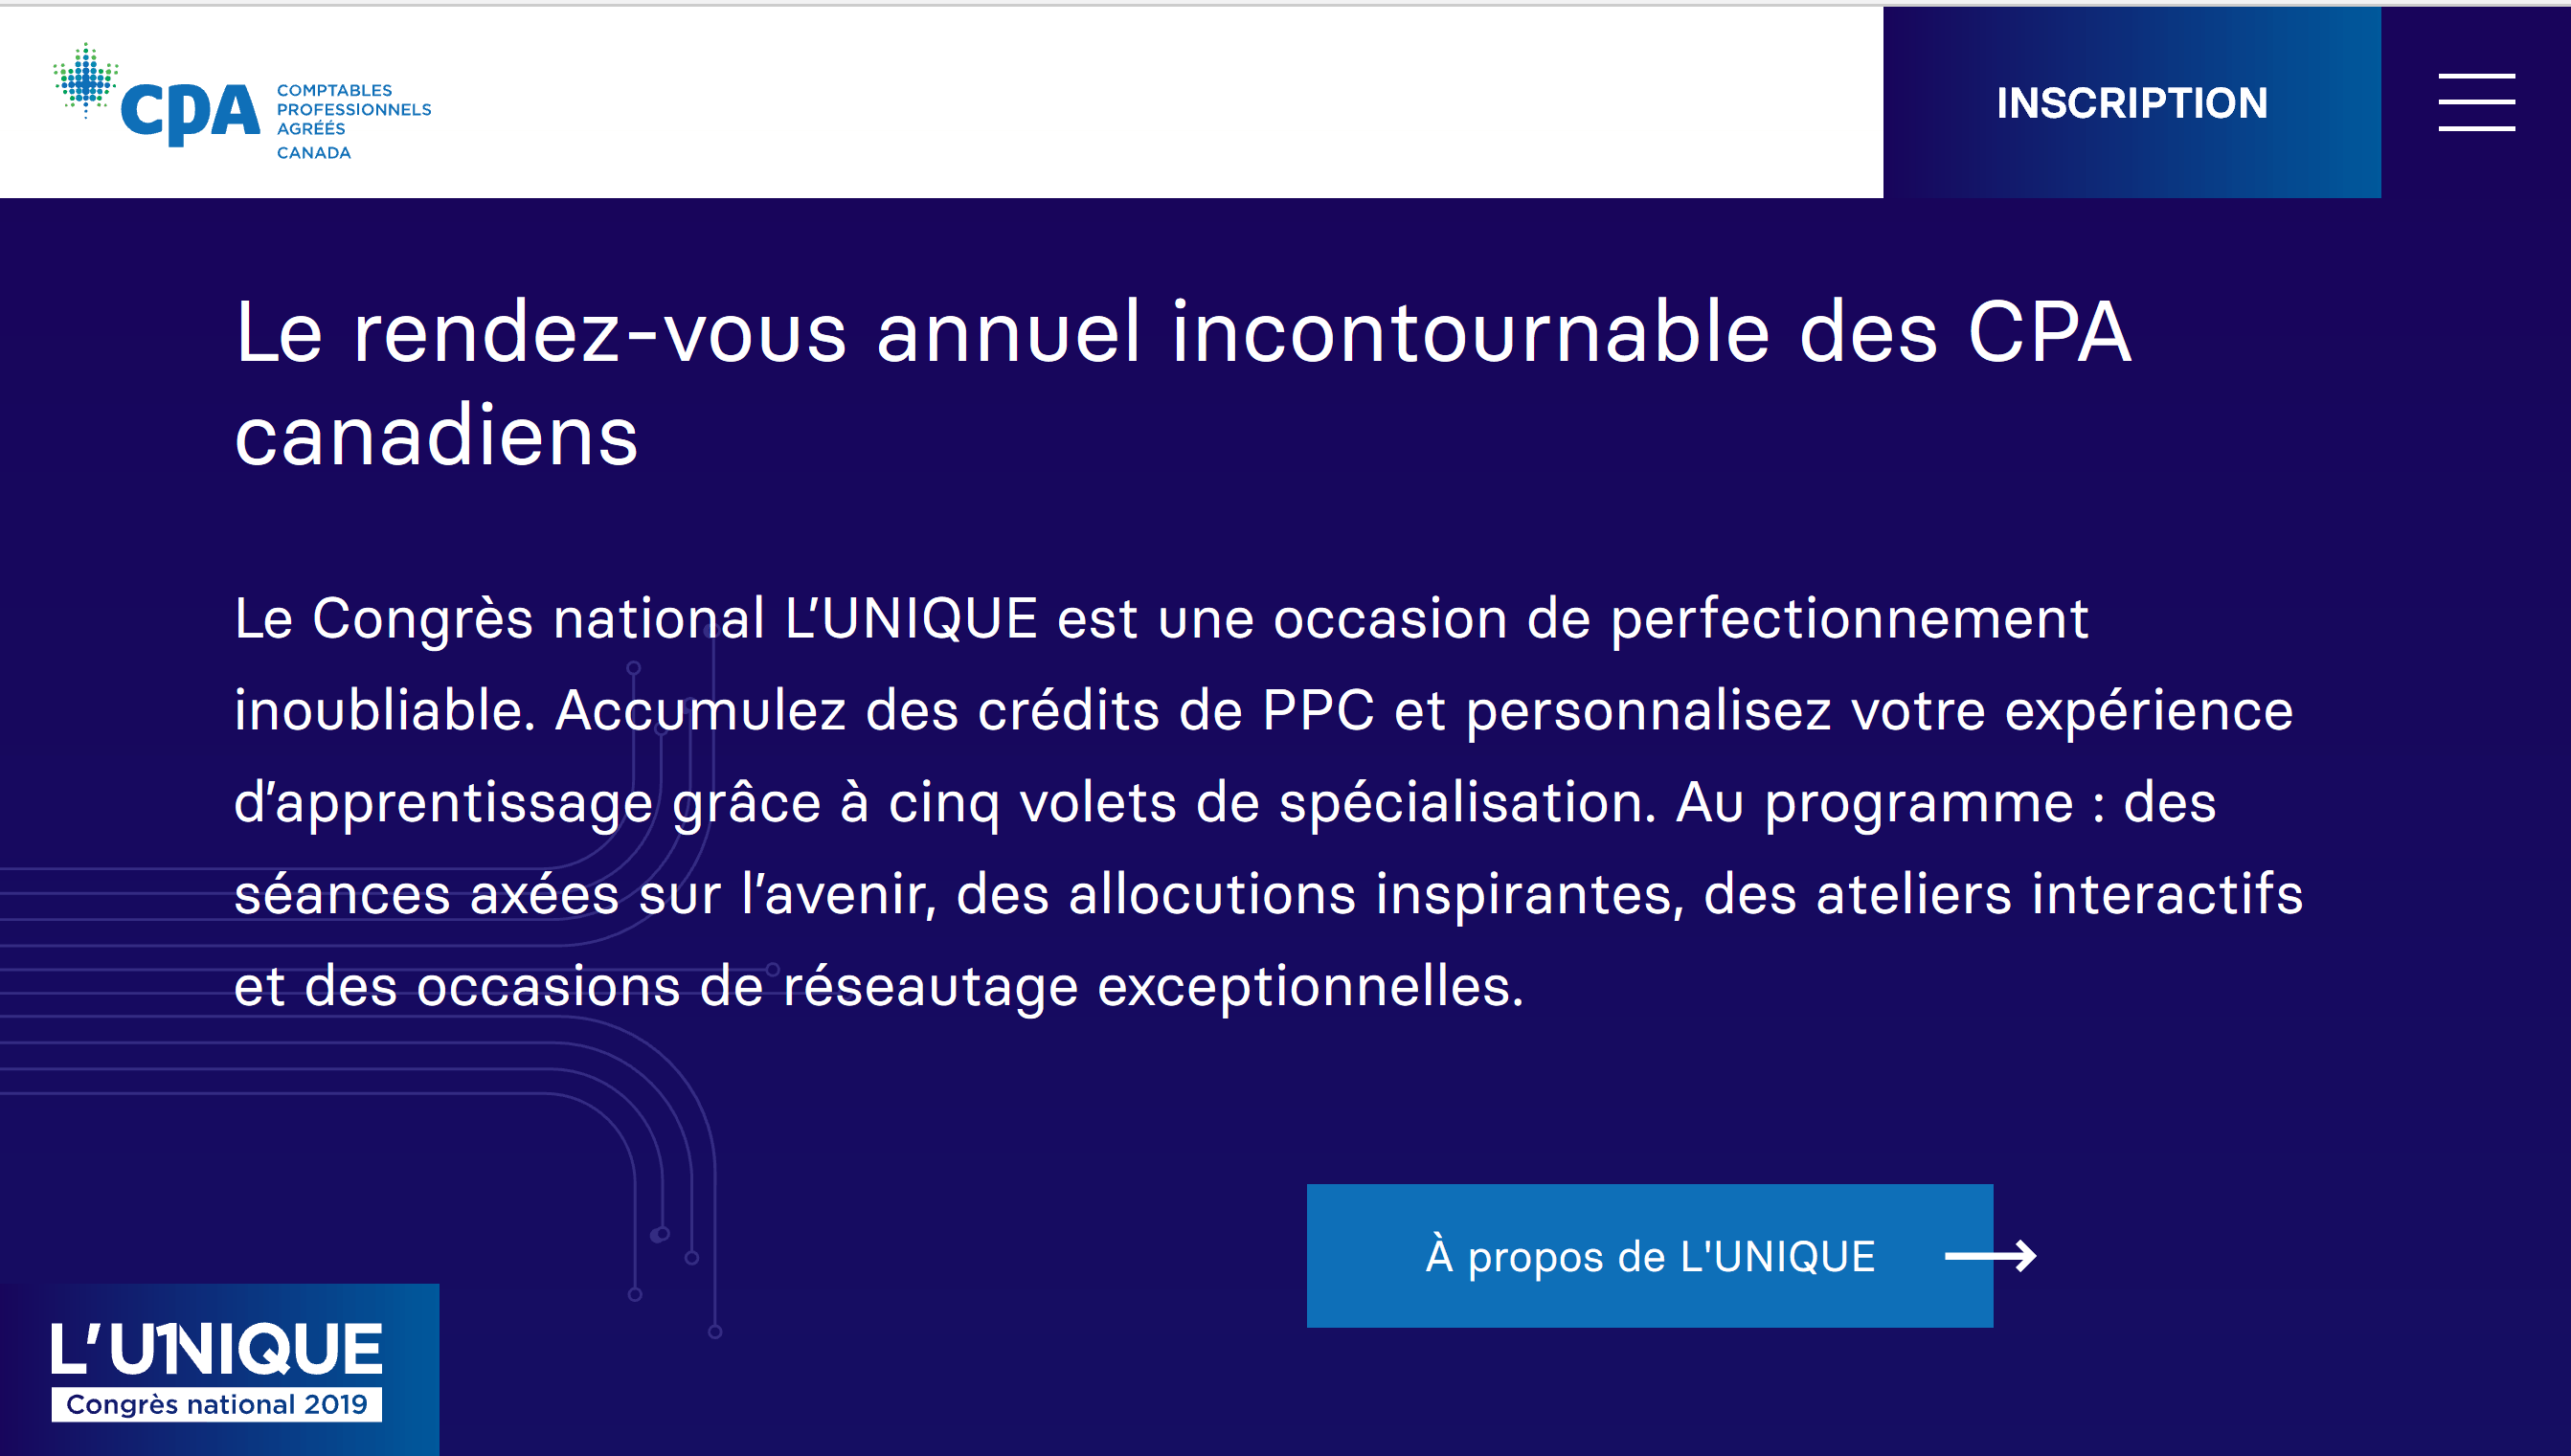 L'Unique congrès national